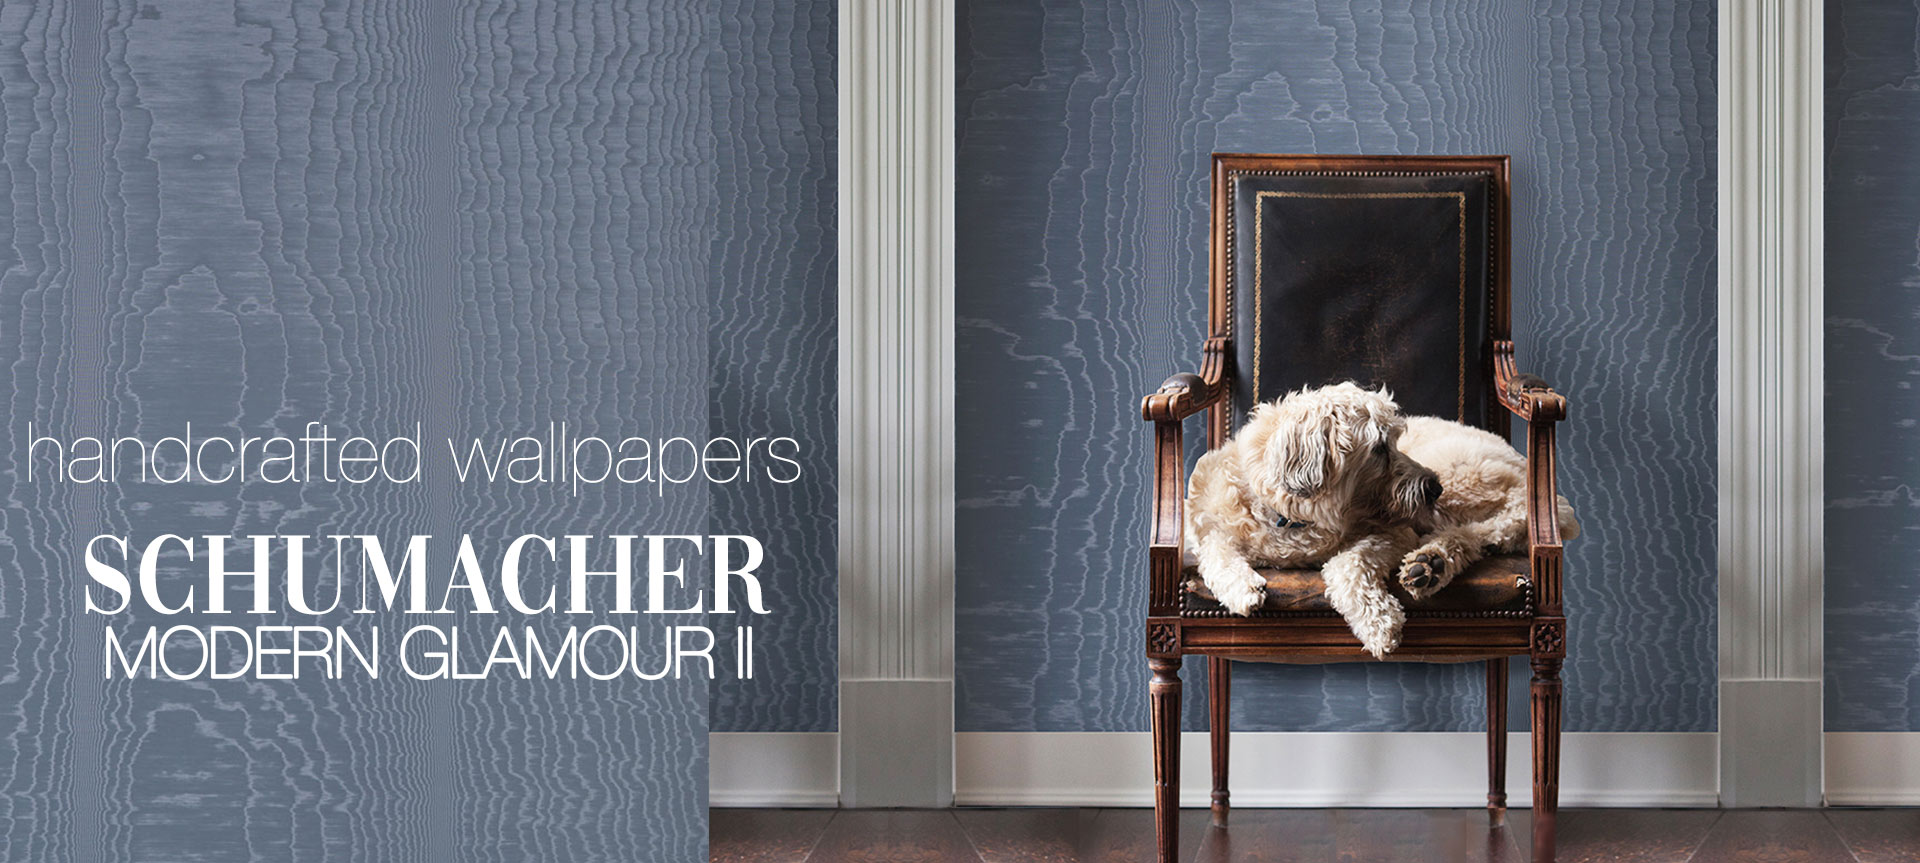 schumacher wallpaper modern glamour 2